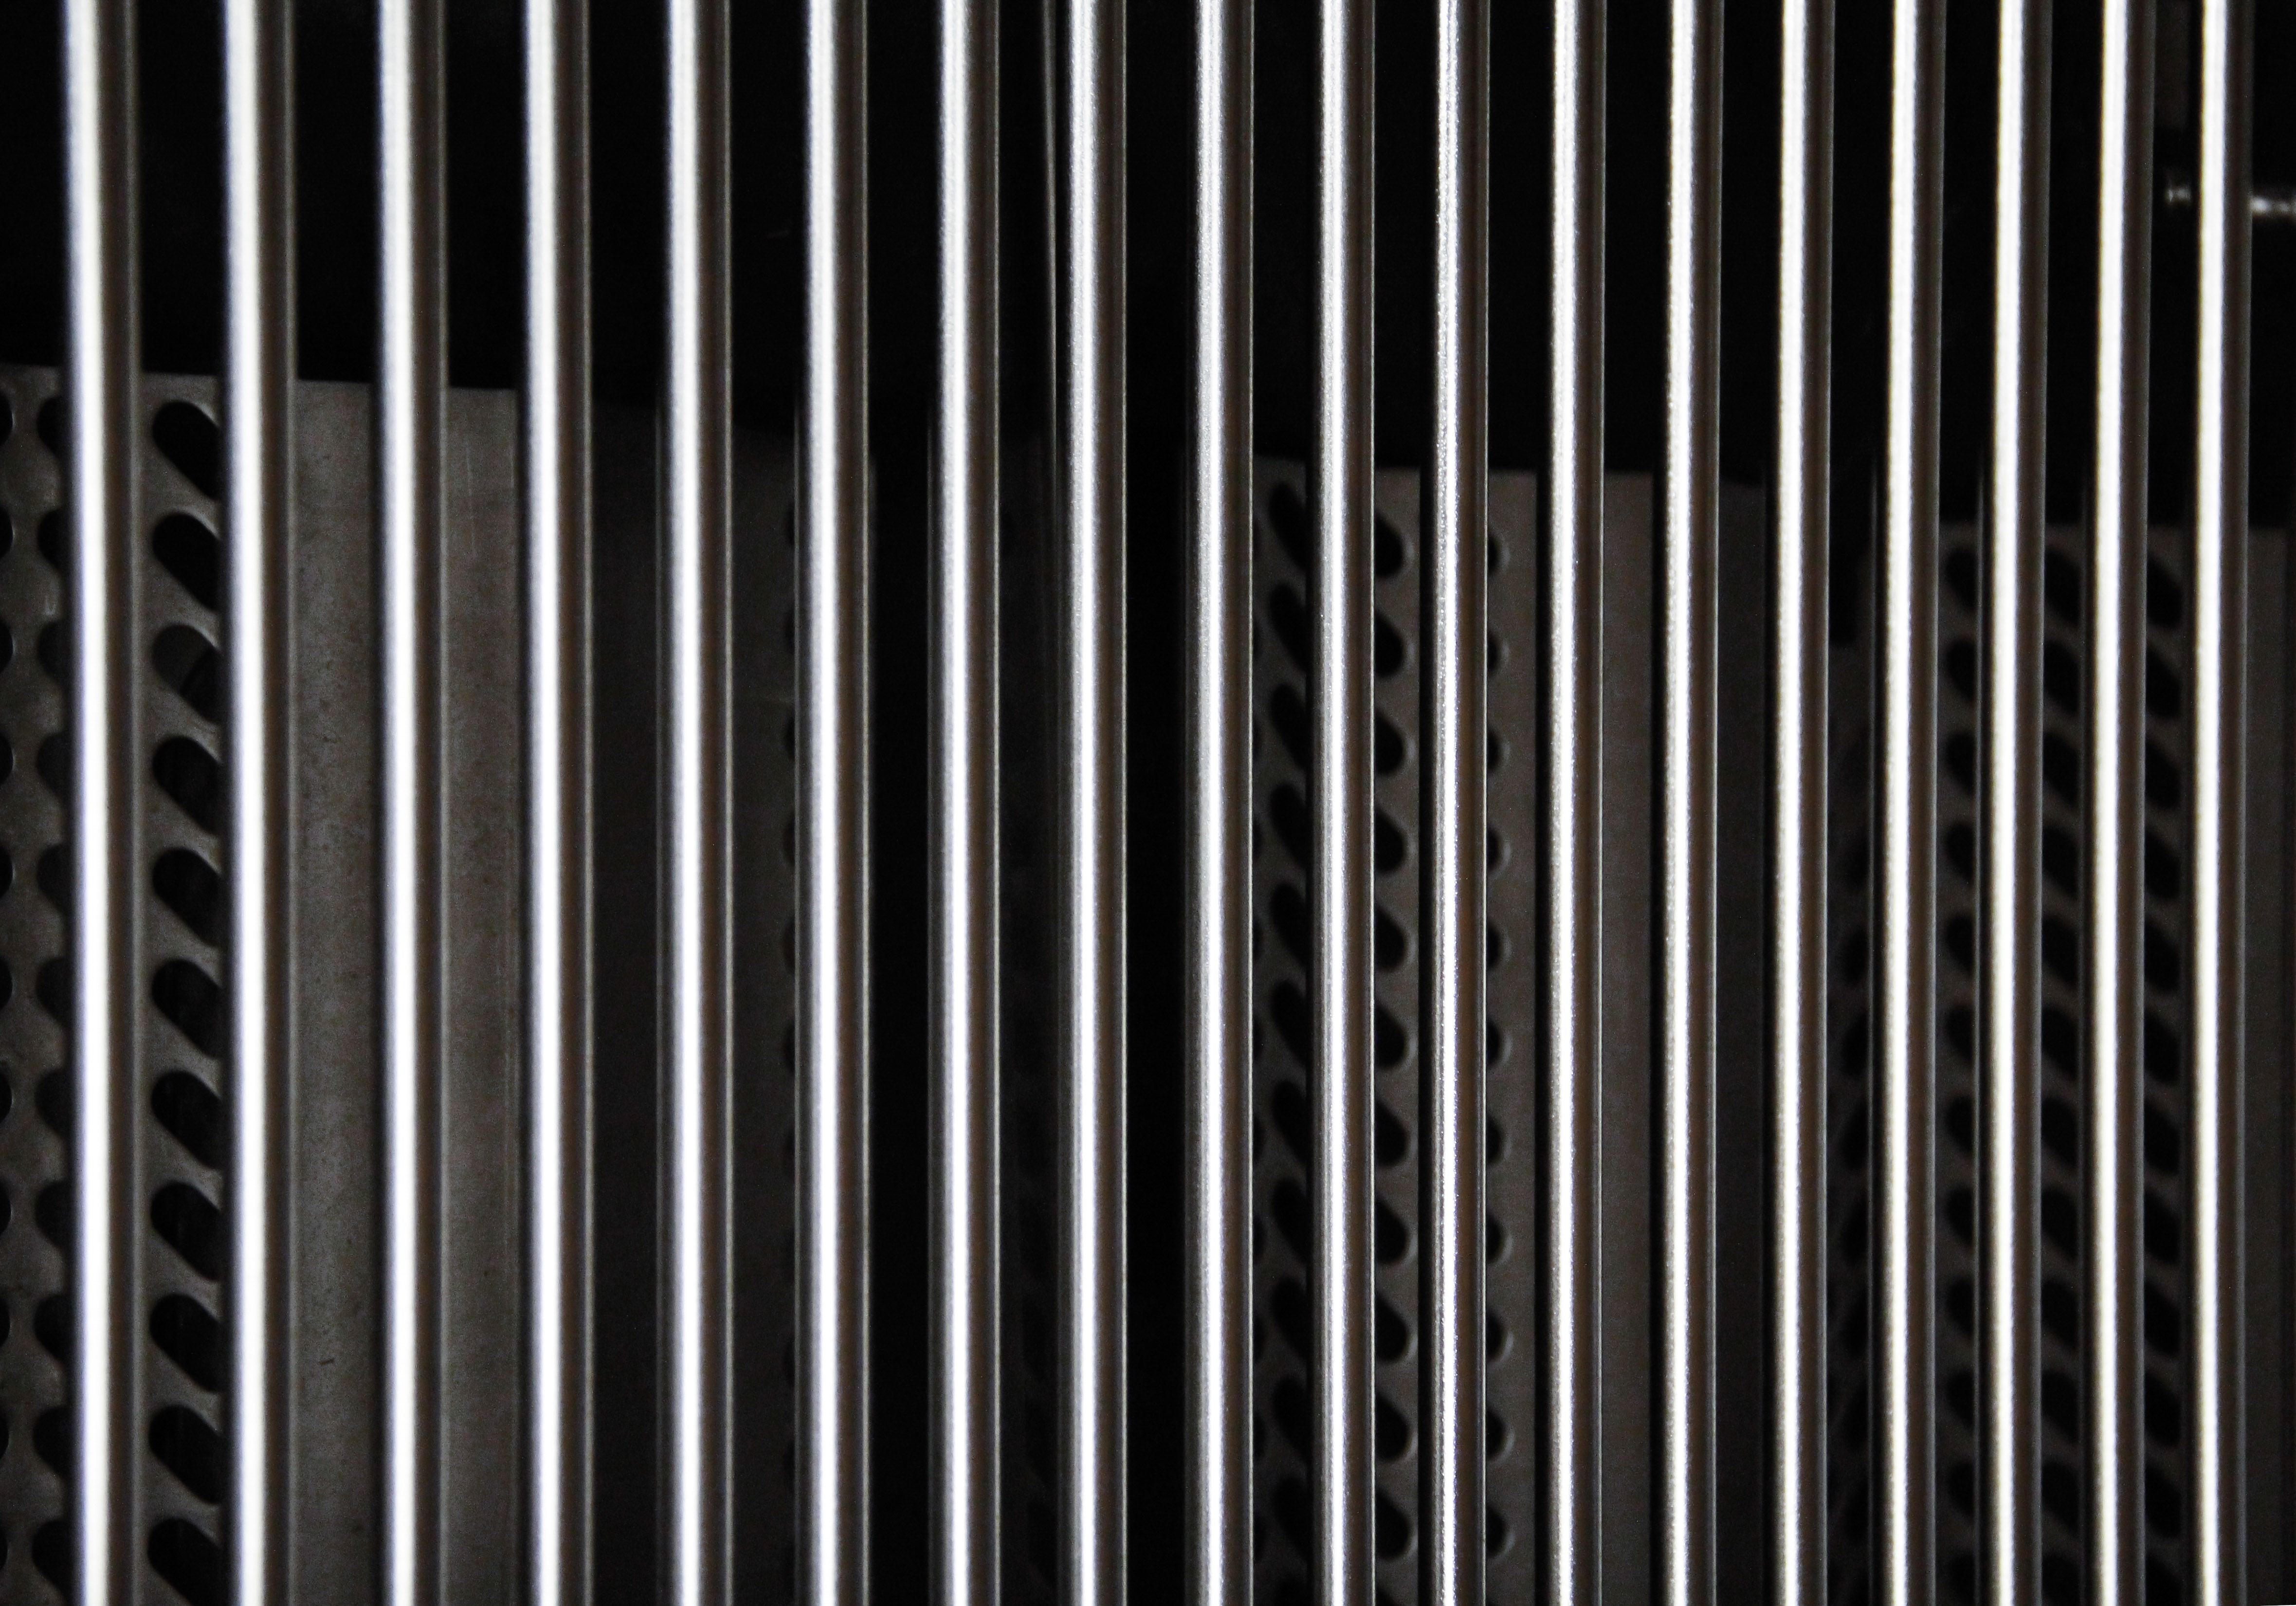 black metal texture. Metal Bar Texture Grill Pole Stainless Steel Shine Stock Photo - TextureX- Free And Premium Textures High Resolution Graphics Black 9